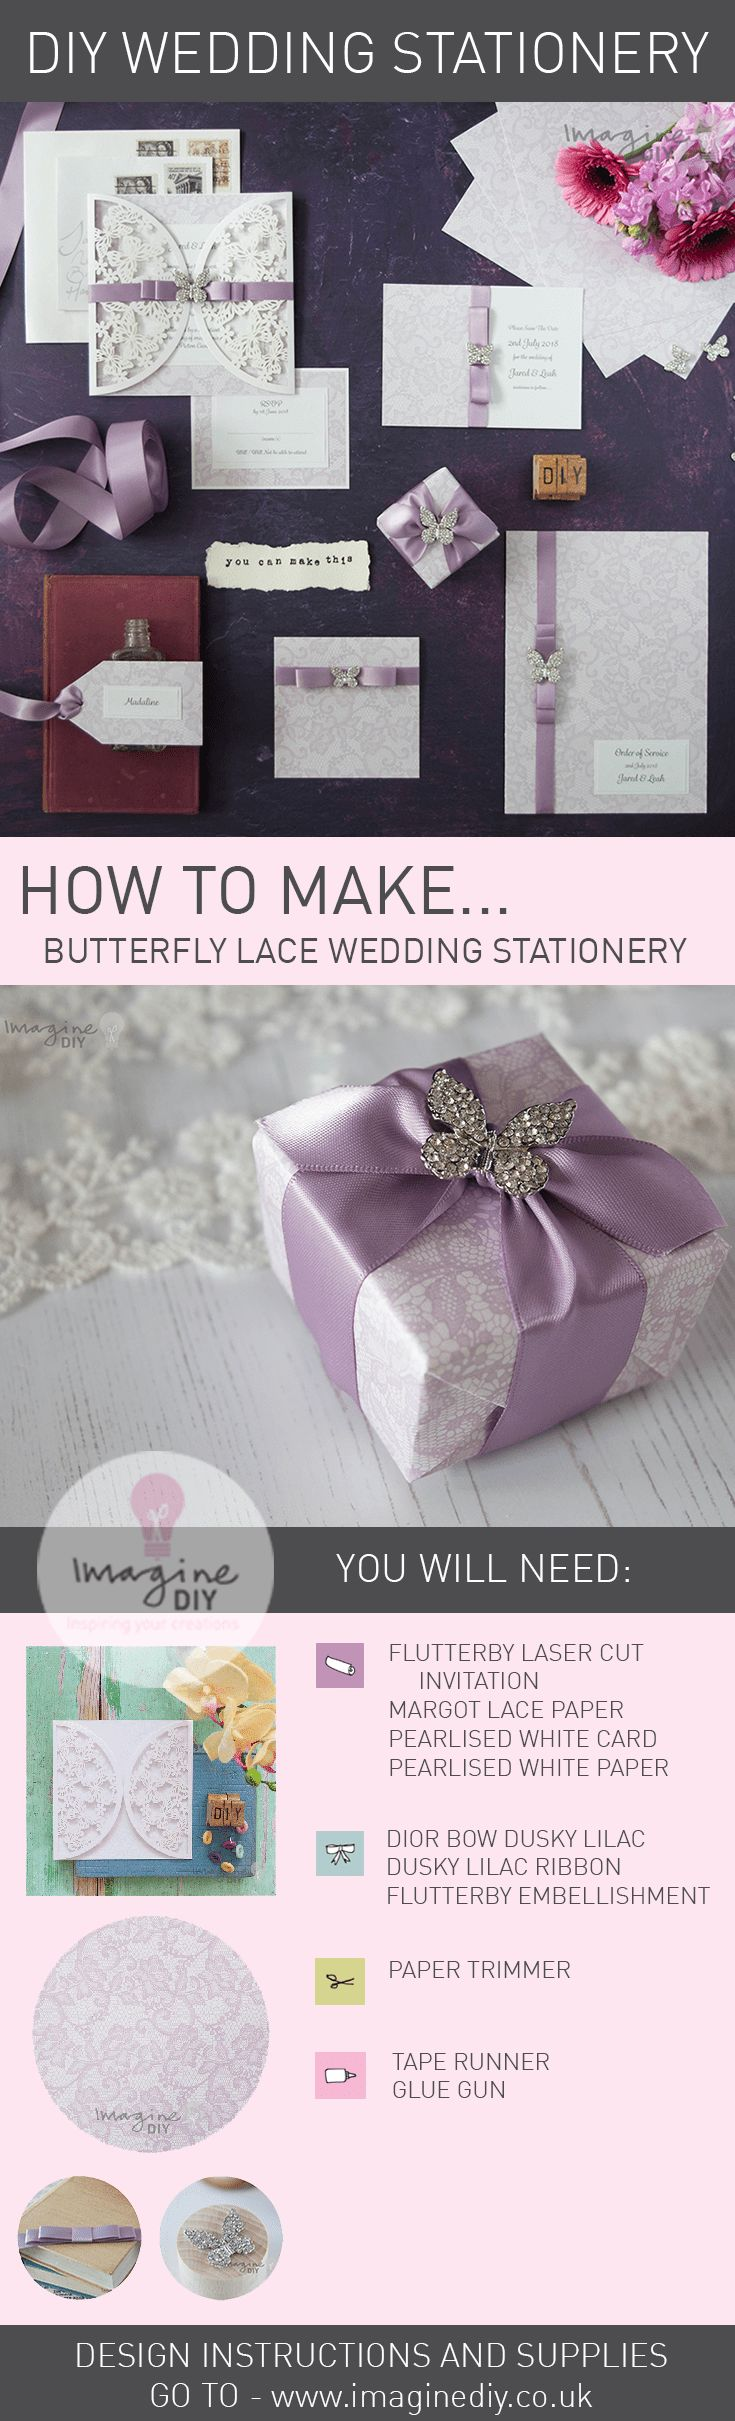 How to make pretty wedding stationery with butterflies and lace. Dusky lilac wedding stationery. DIY wedding stationery ideas